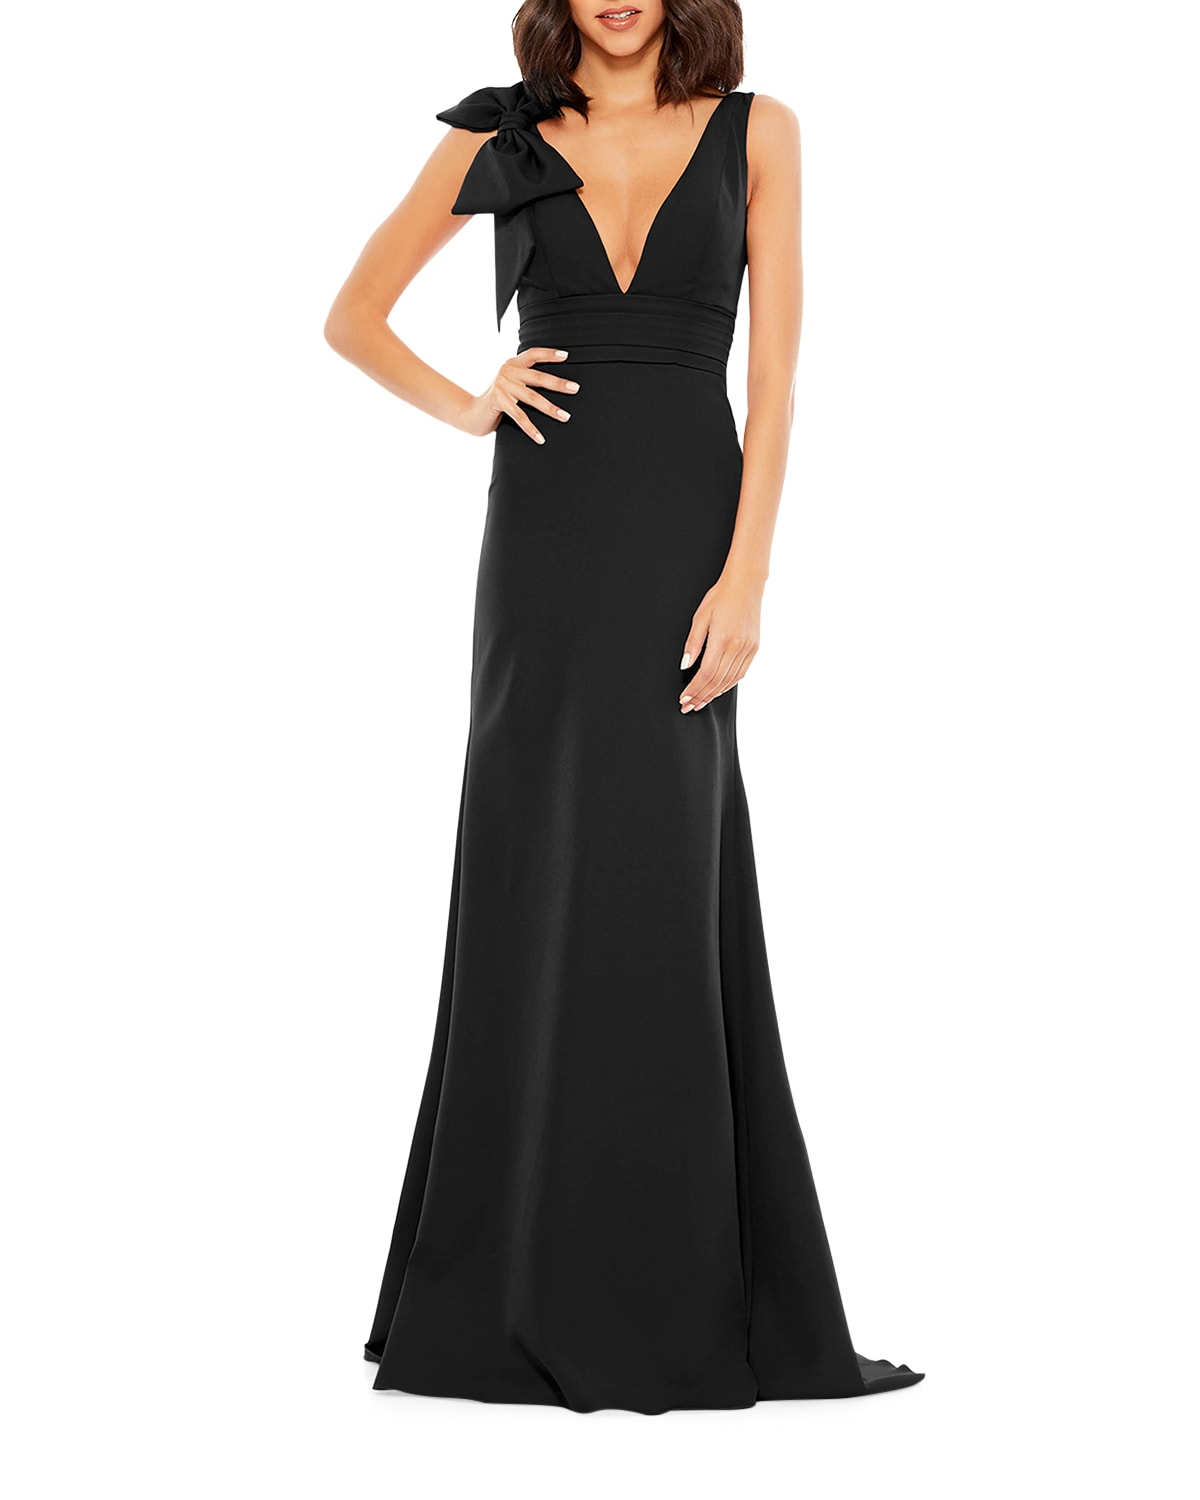 Sleeveless Empire Gown w/ Bow